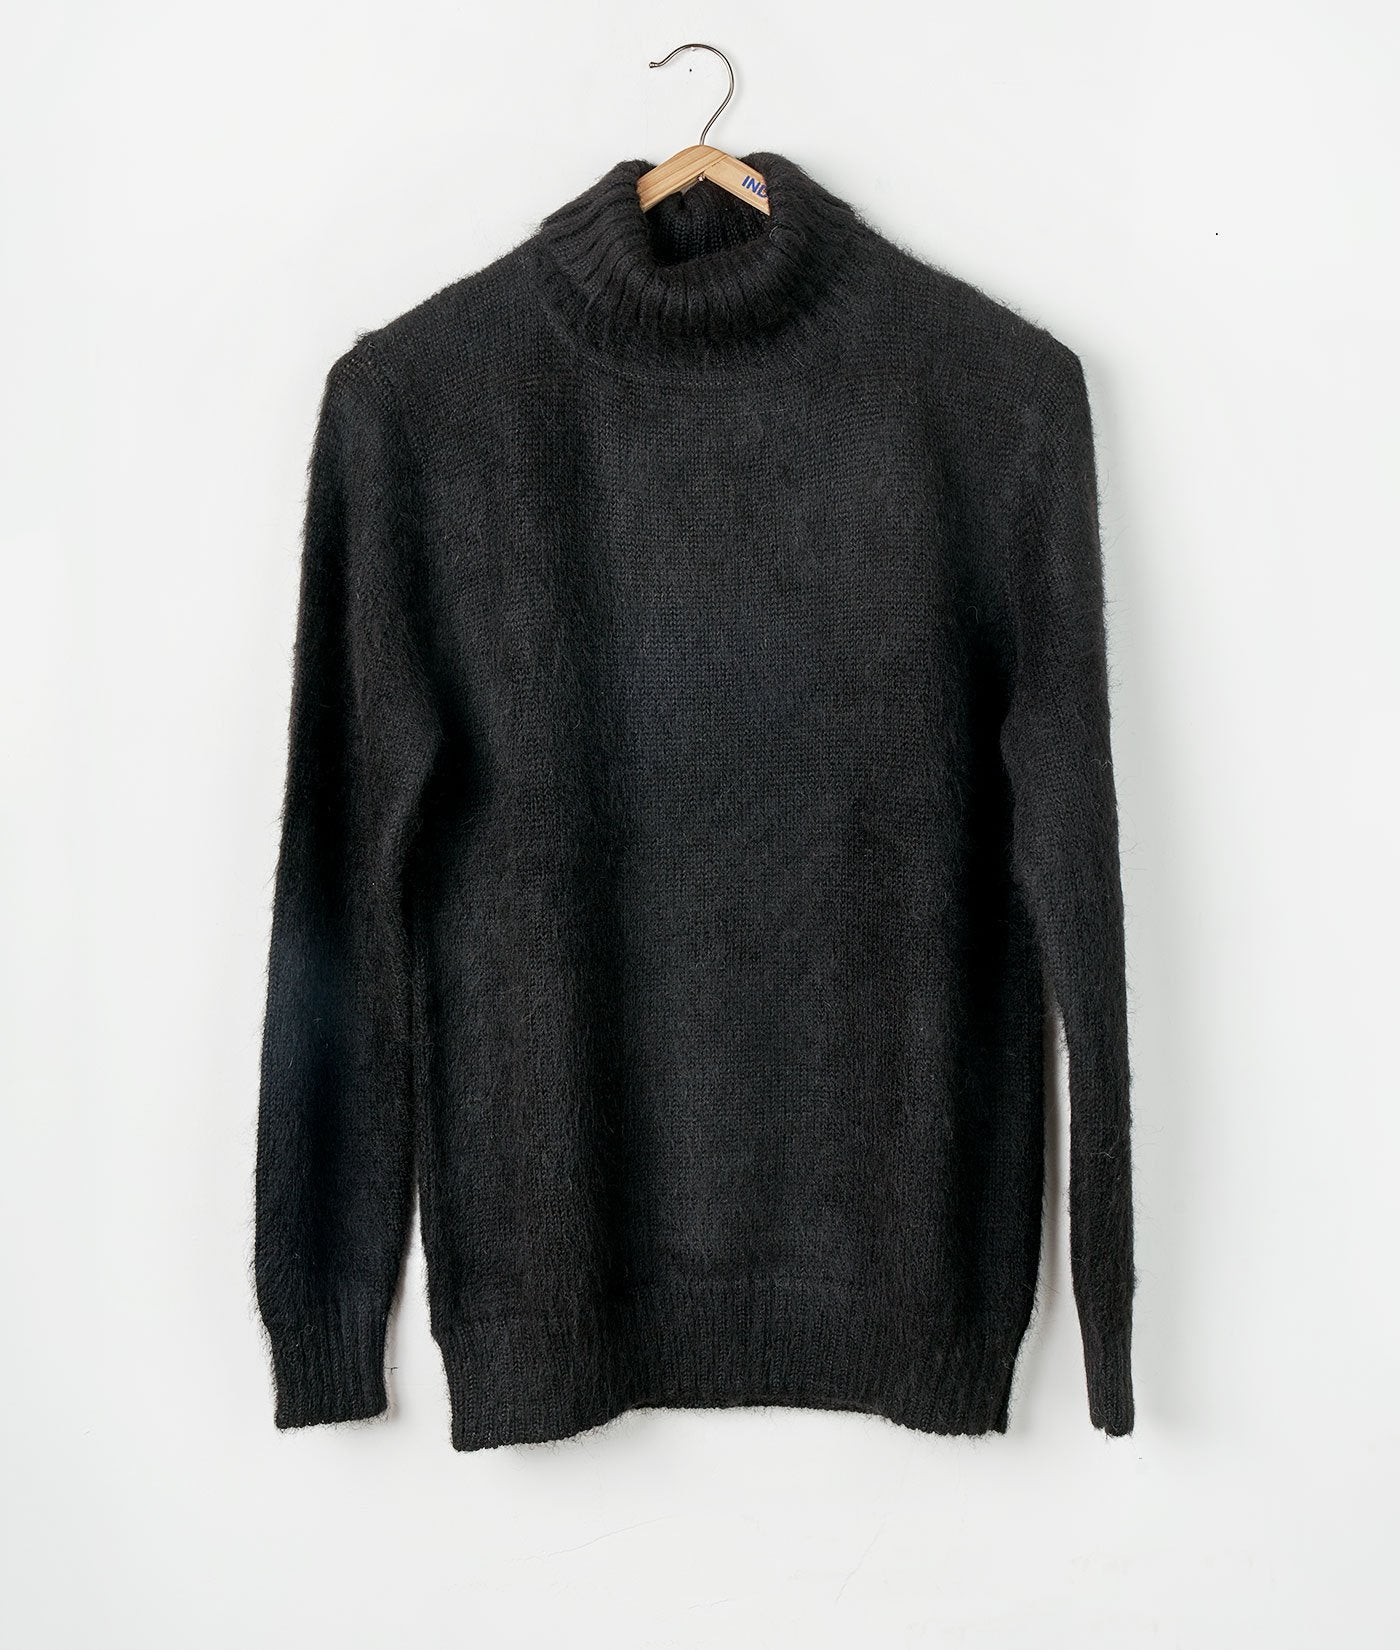 Industry of All Nations Alpaca Turtleneck Knit Sweater